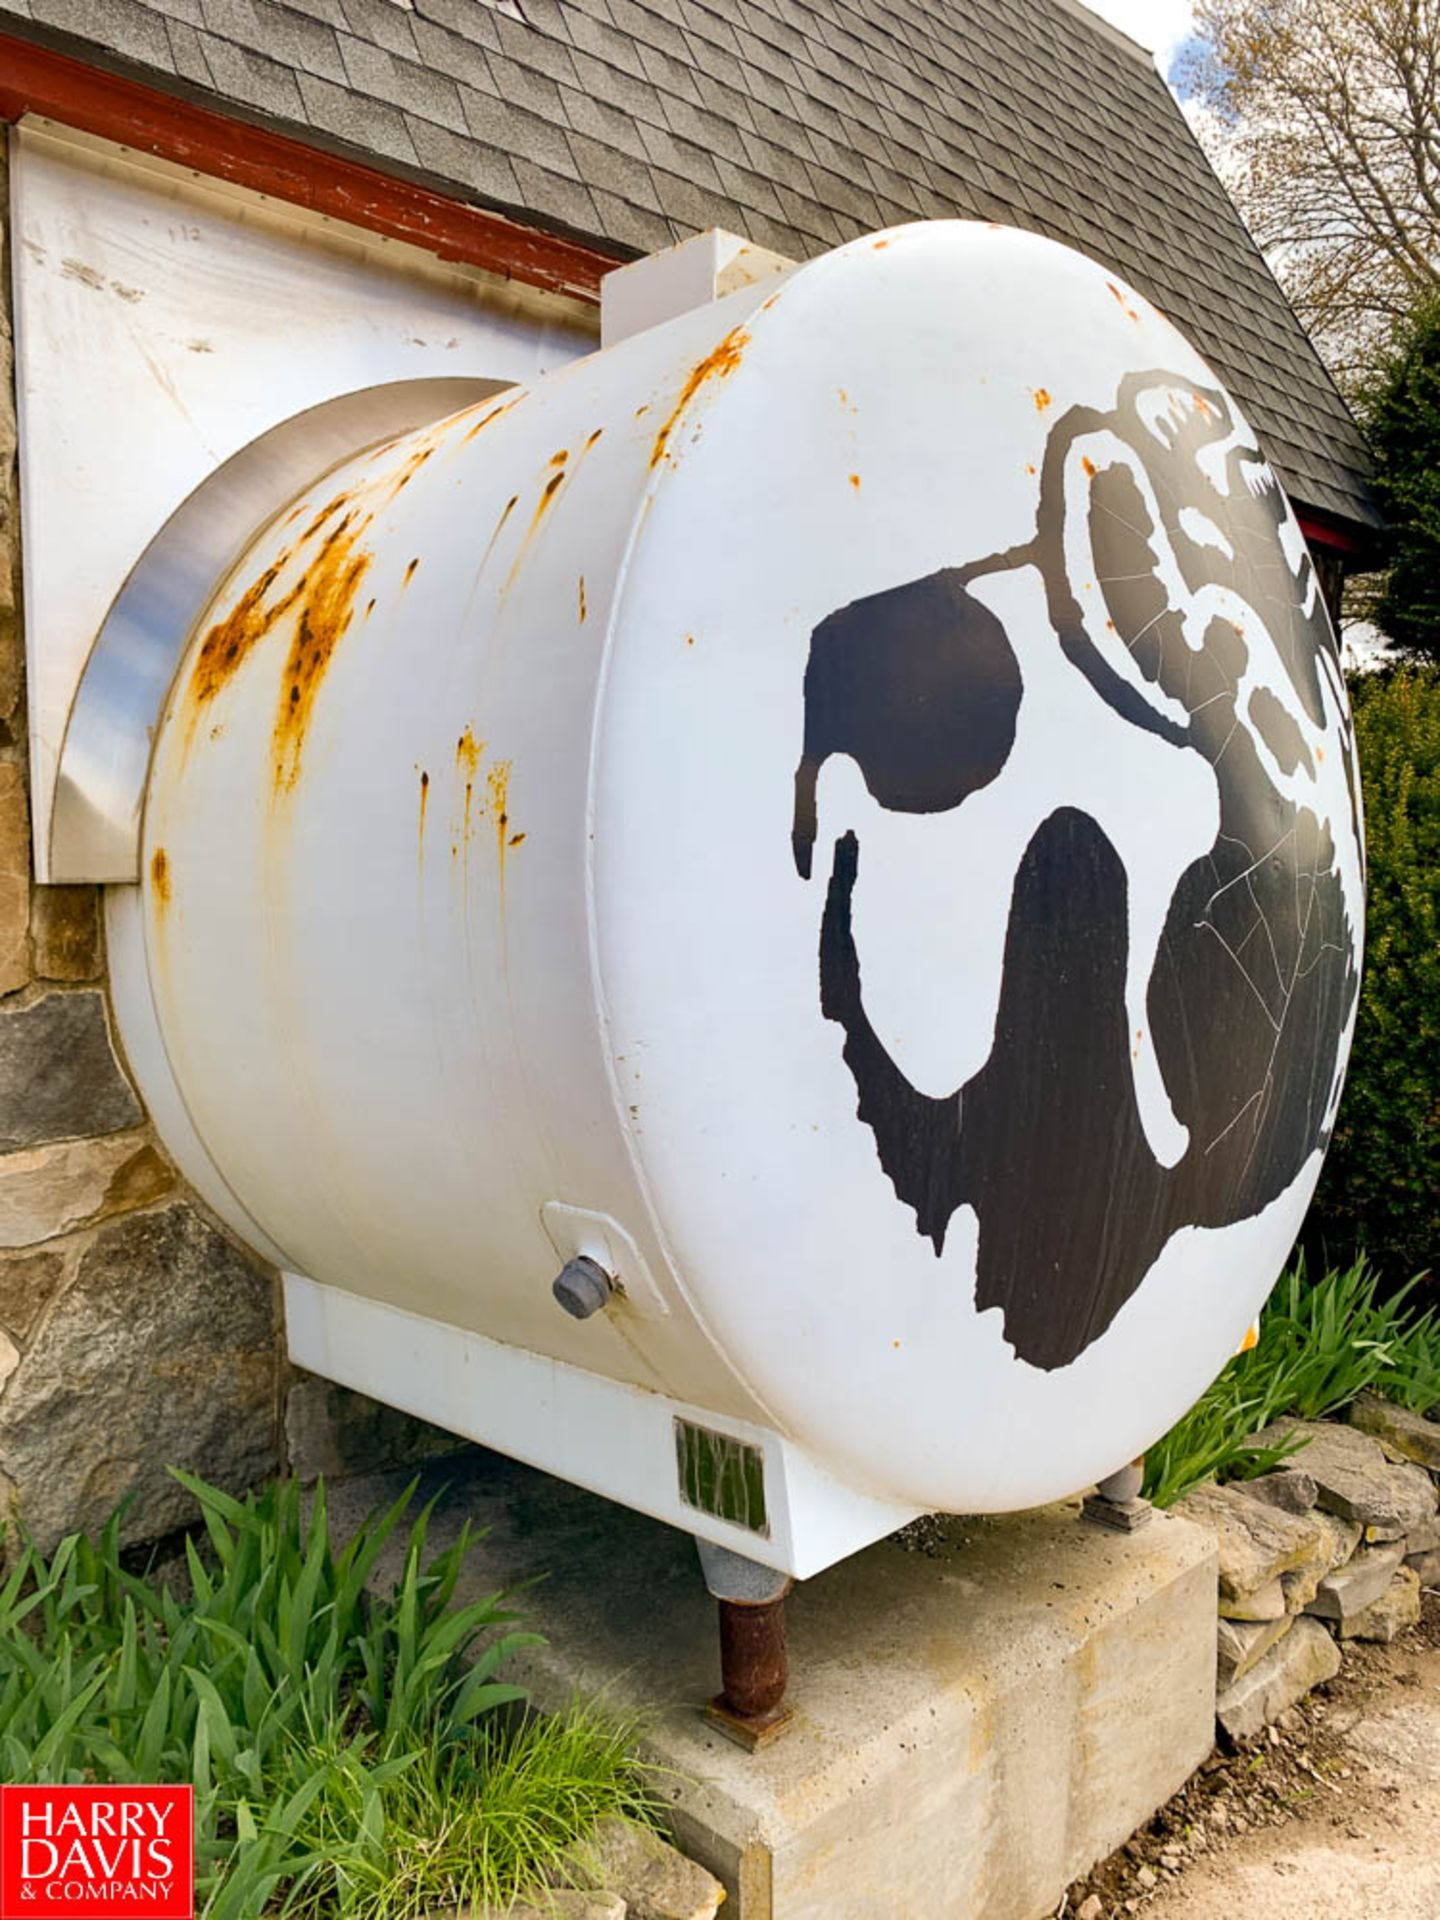 Walker 1,000 Gallon Jacketed Horizontal S/S Tank with S/S Front and Vertical Agitation, Model: HHT- - Image 3 of 4